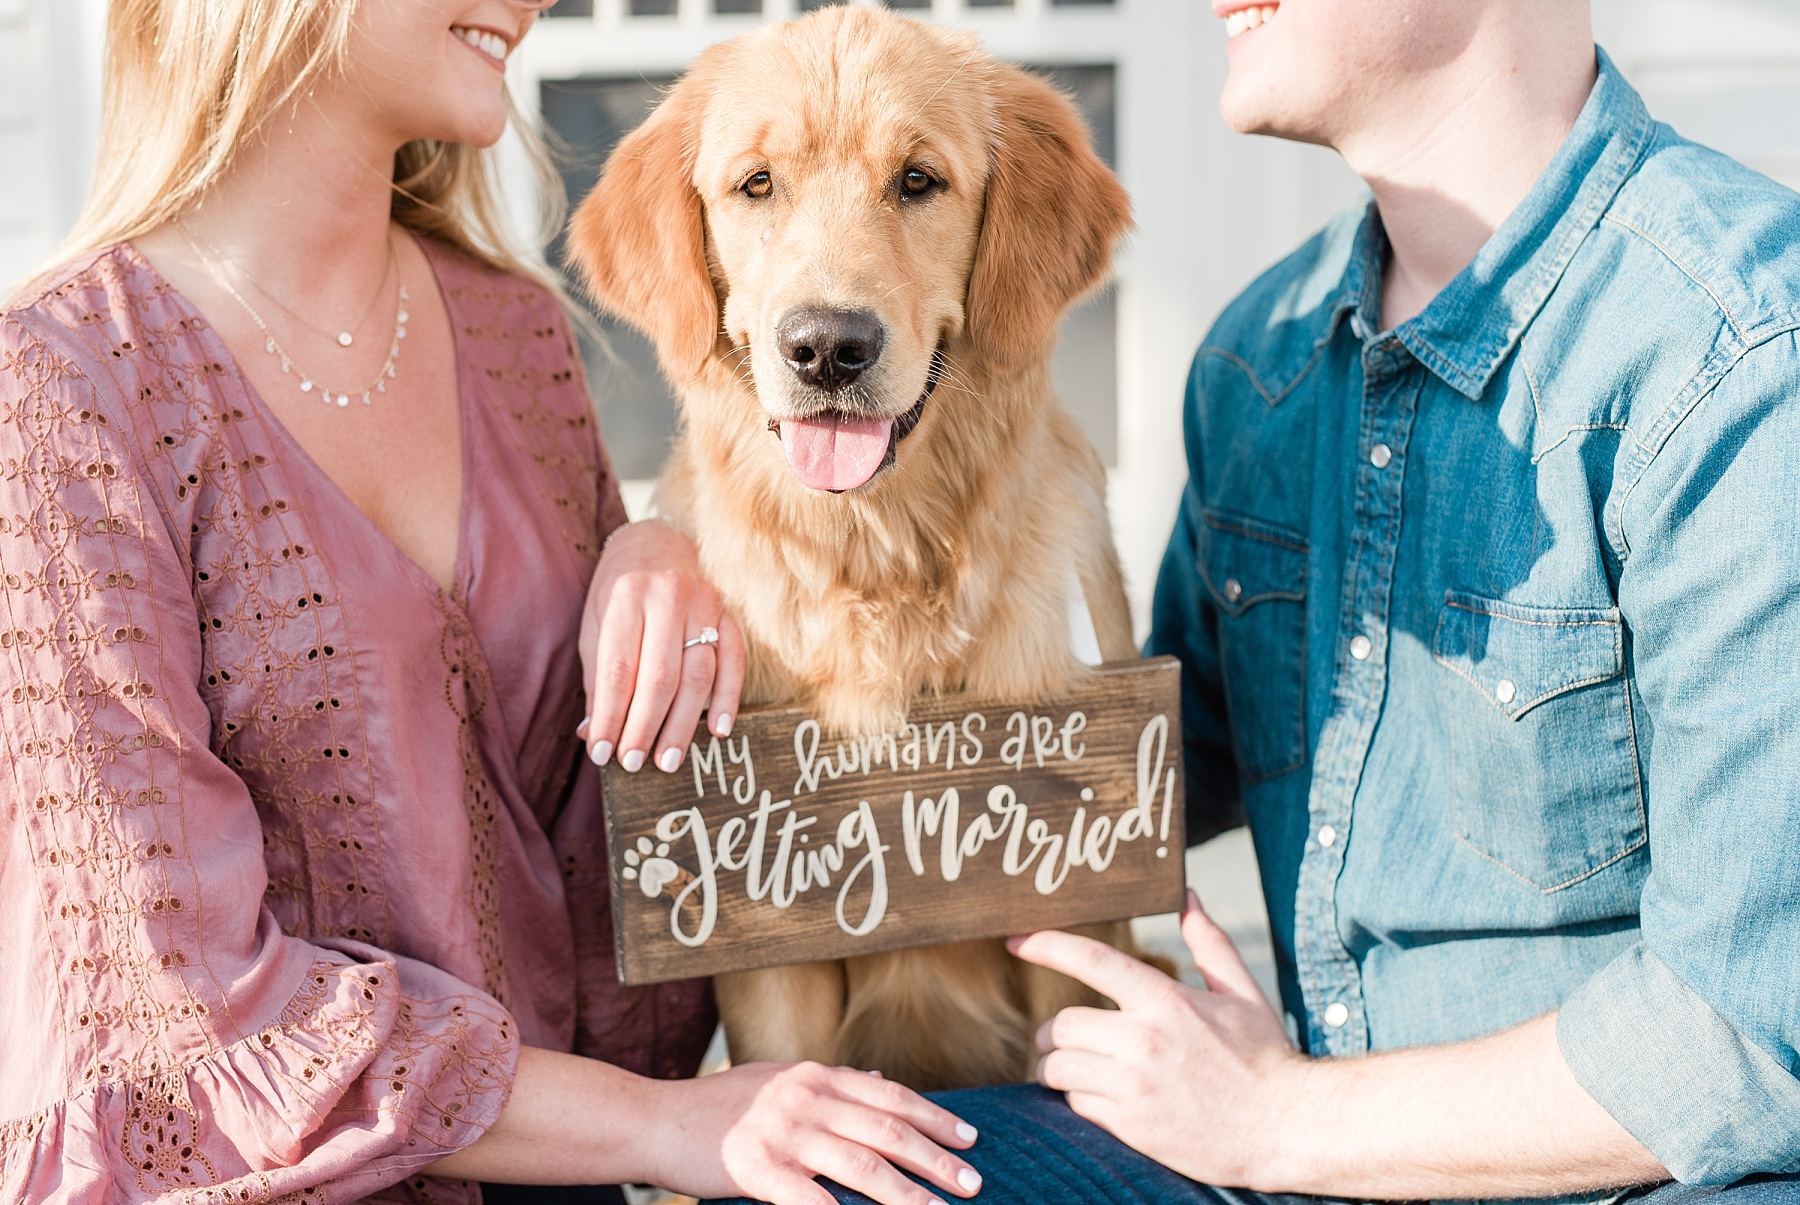 Spring Sunset Engagement Session with High School Sweethearts and Golden Retriever Puppy at Blue Bell Farm Fayette Missouri by Kelsi Kliethermes Photography_0004.jpg